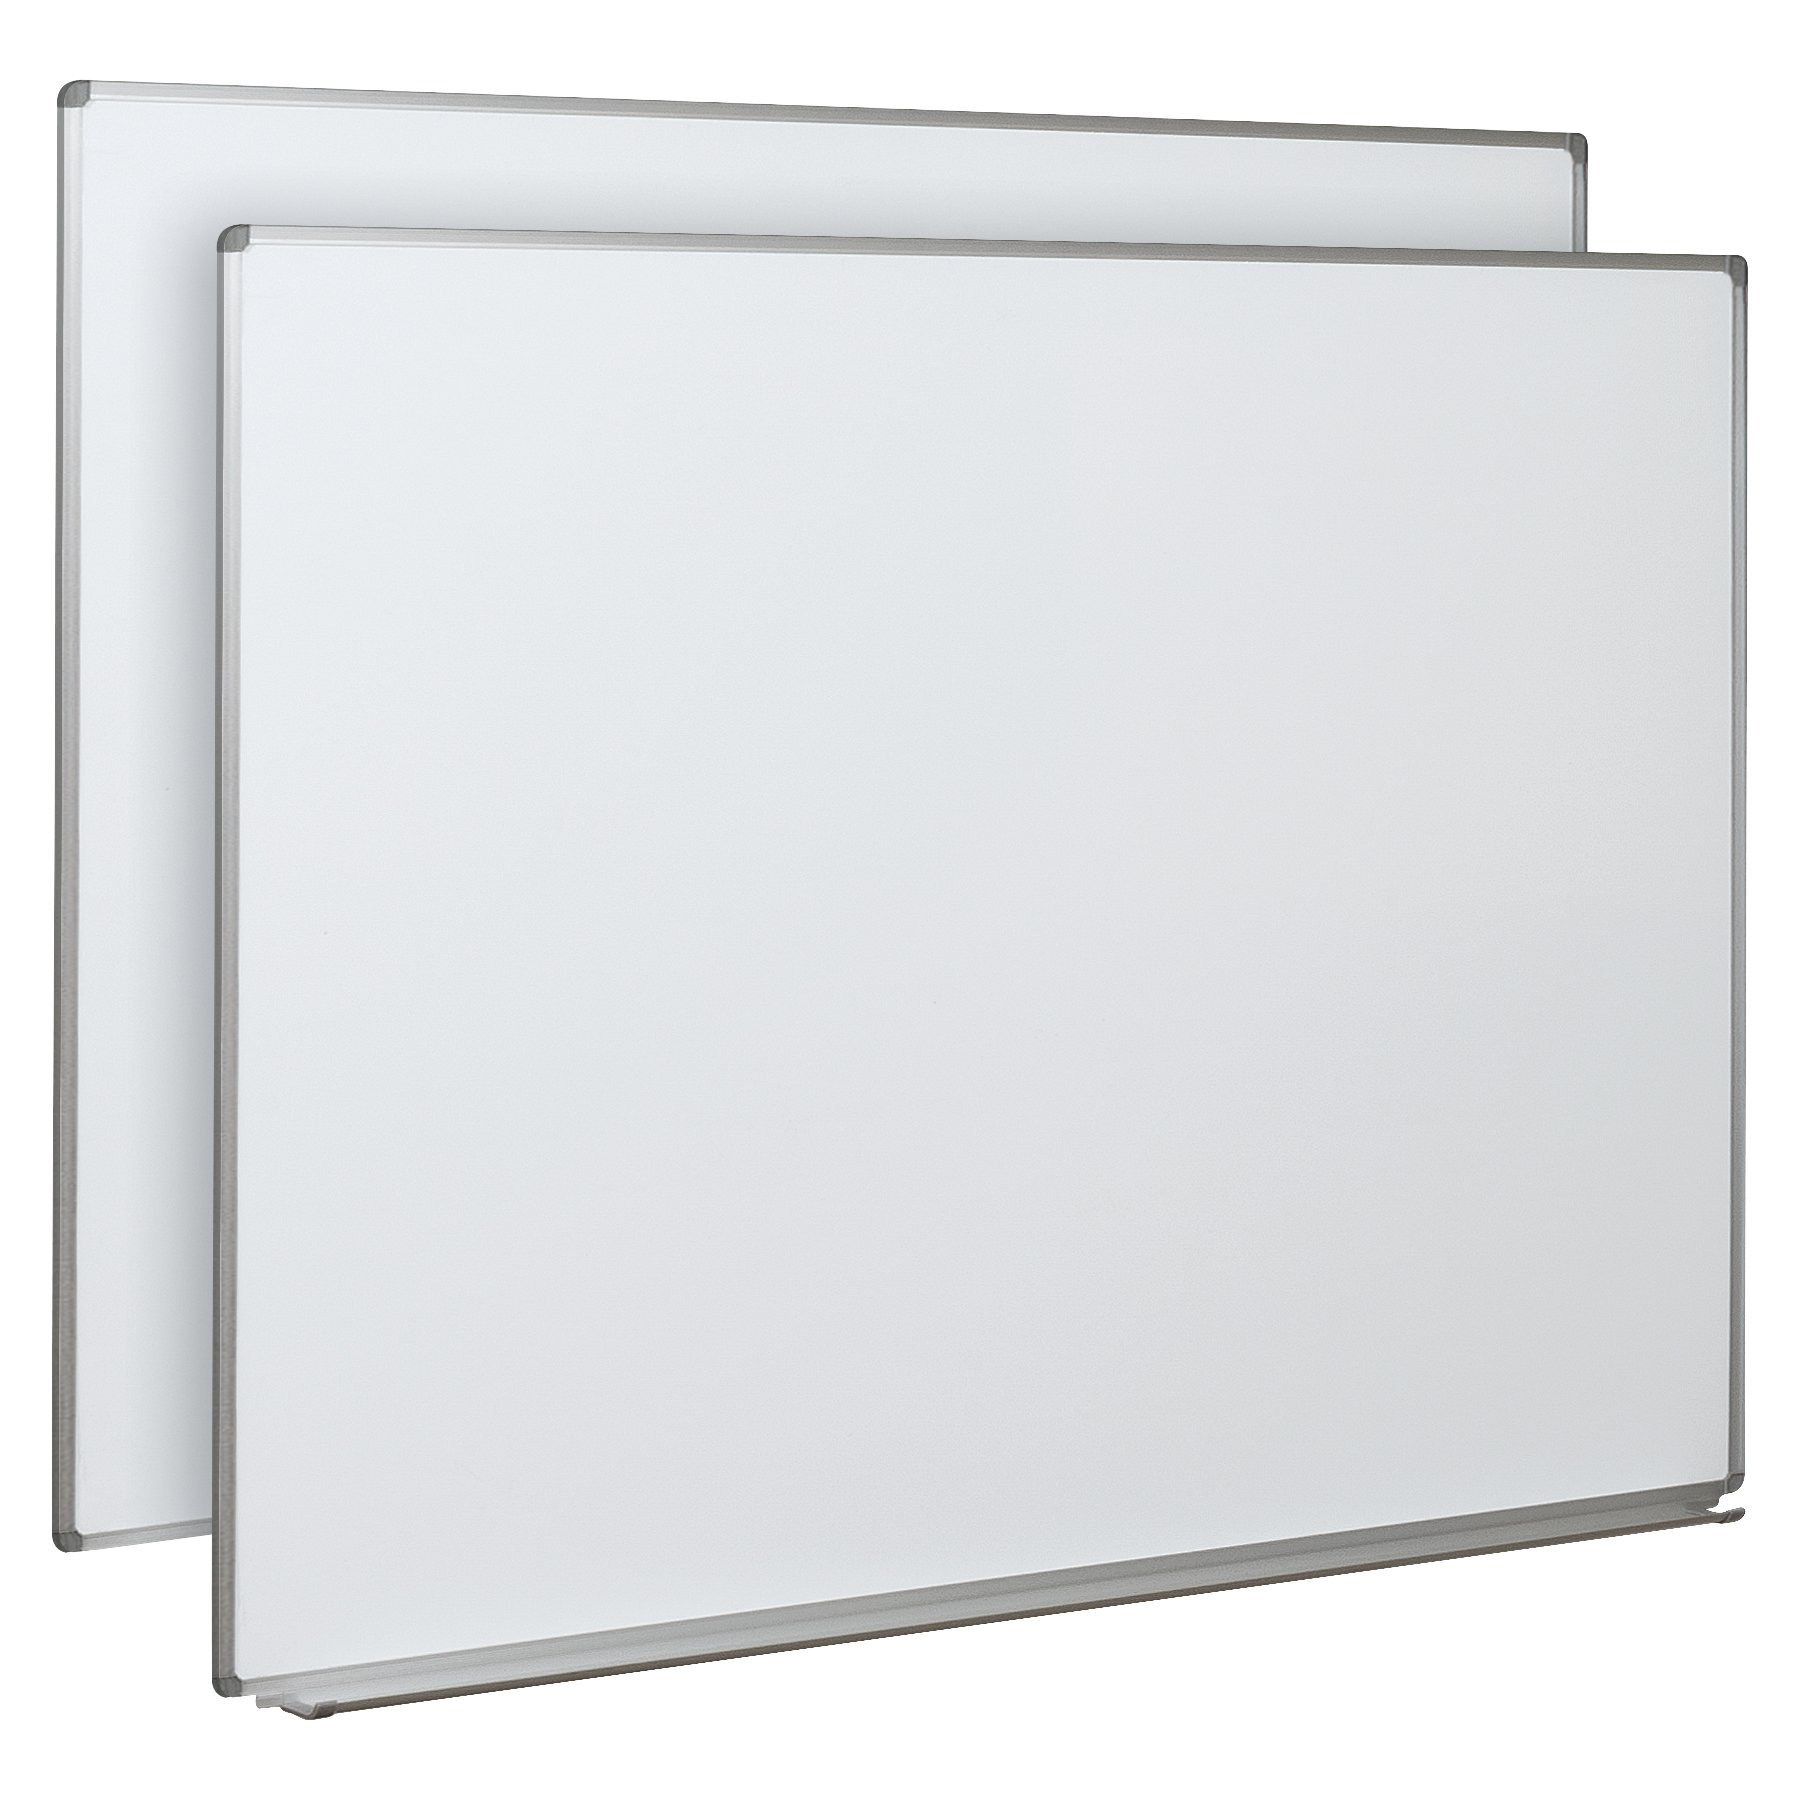 Balt Essentials Mobile Vertical Sliding Whiteboard, Vertical Boards, Box 1 of 2 and must order box 2 to complete unit (84186)